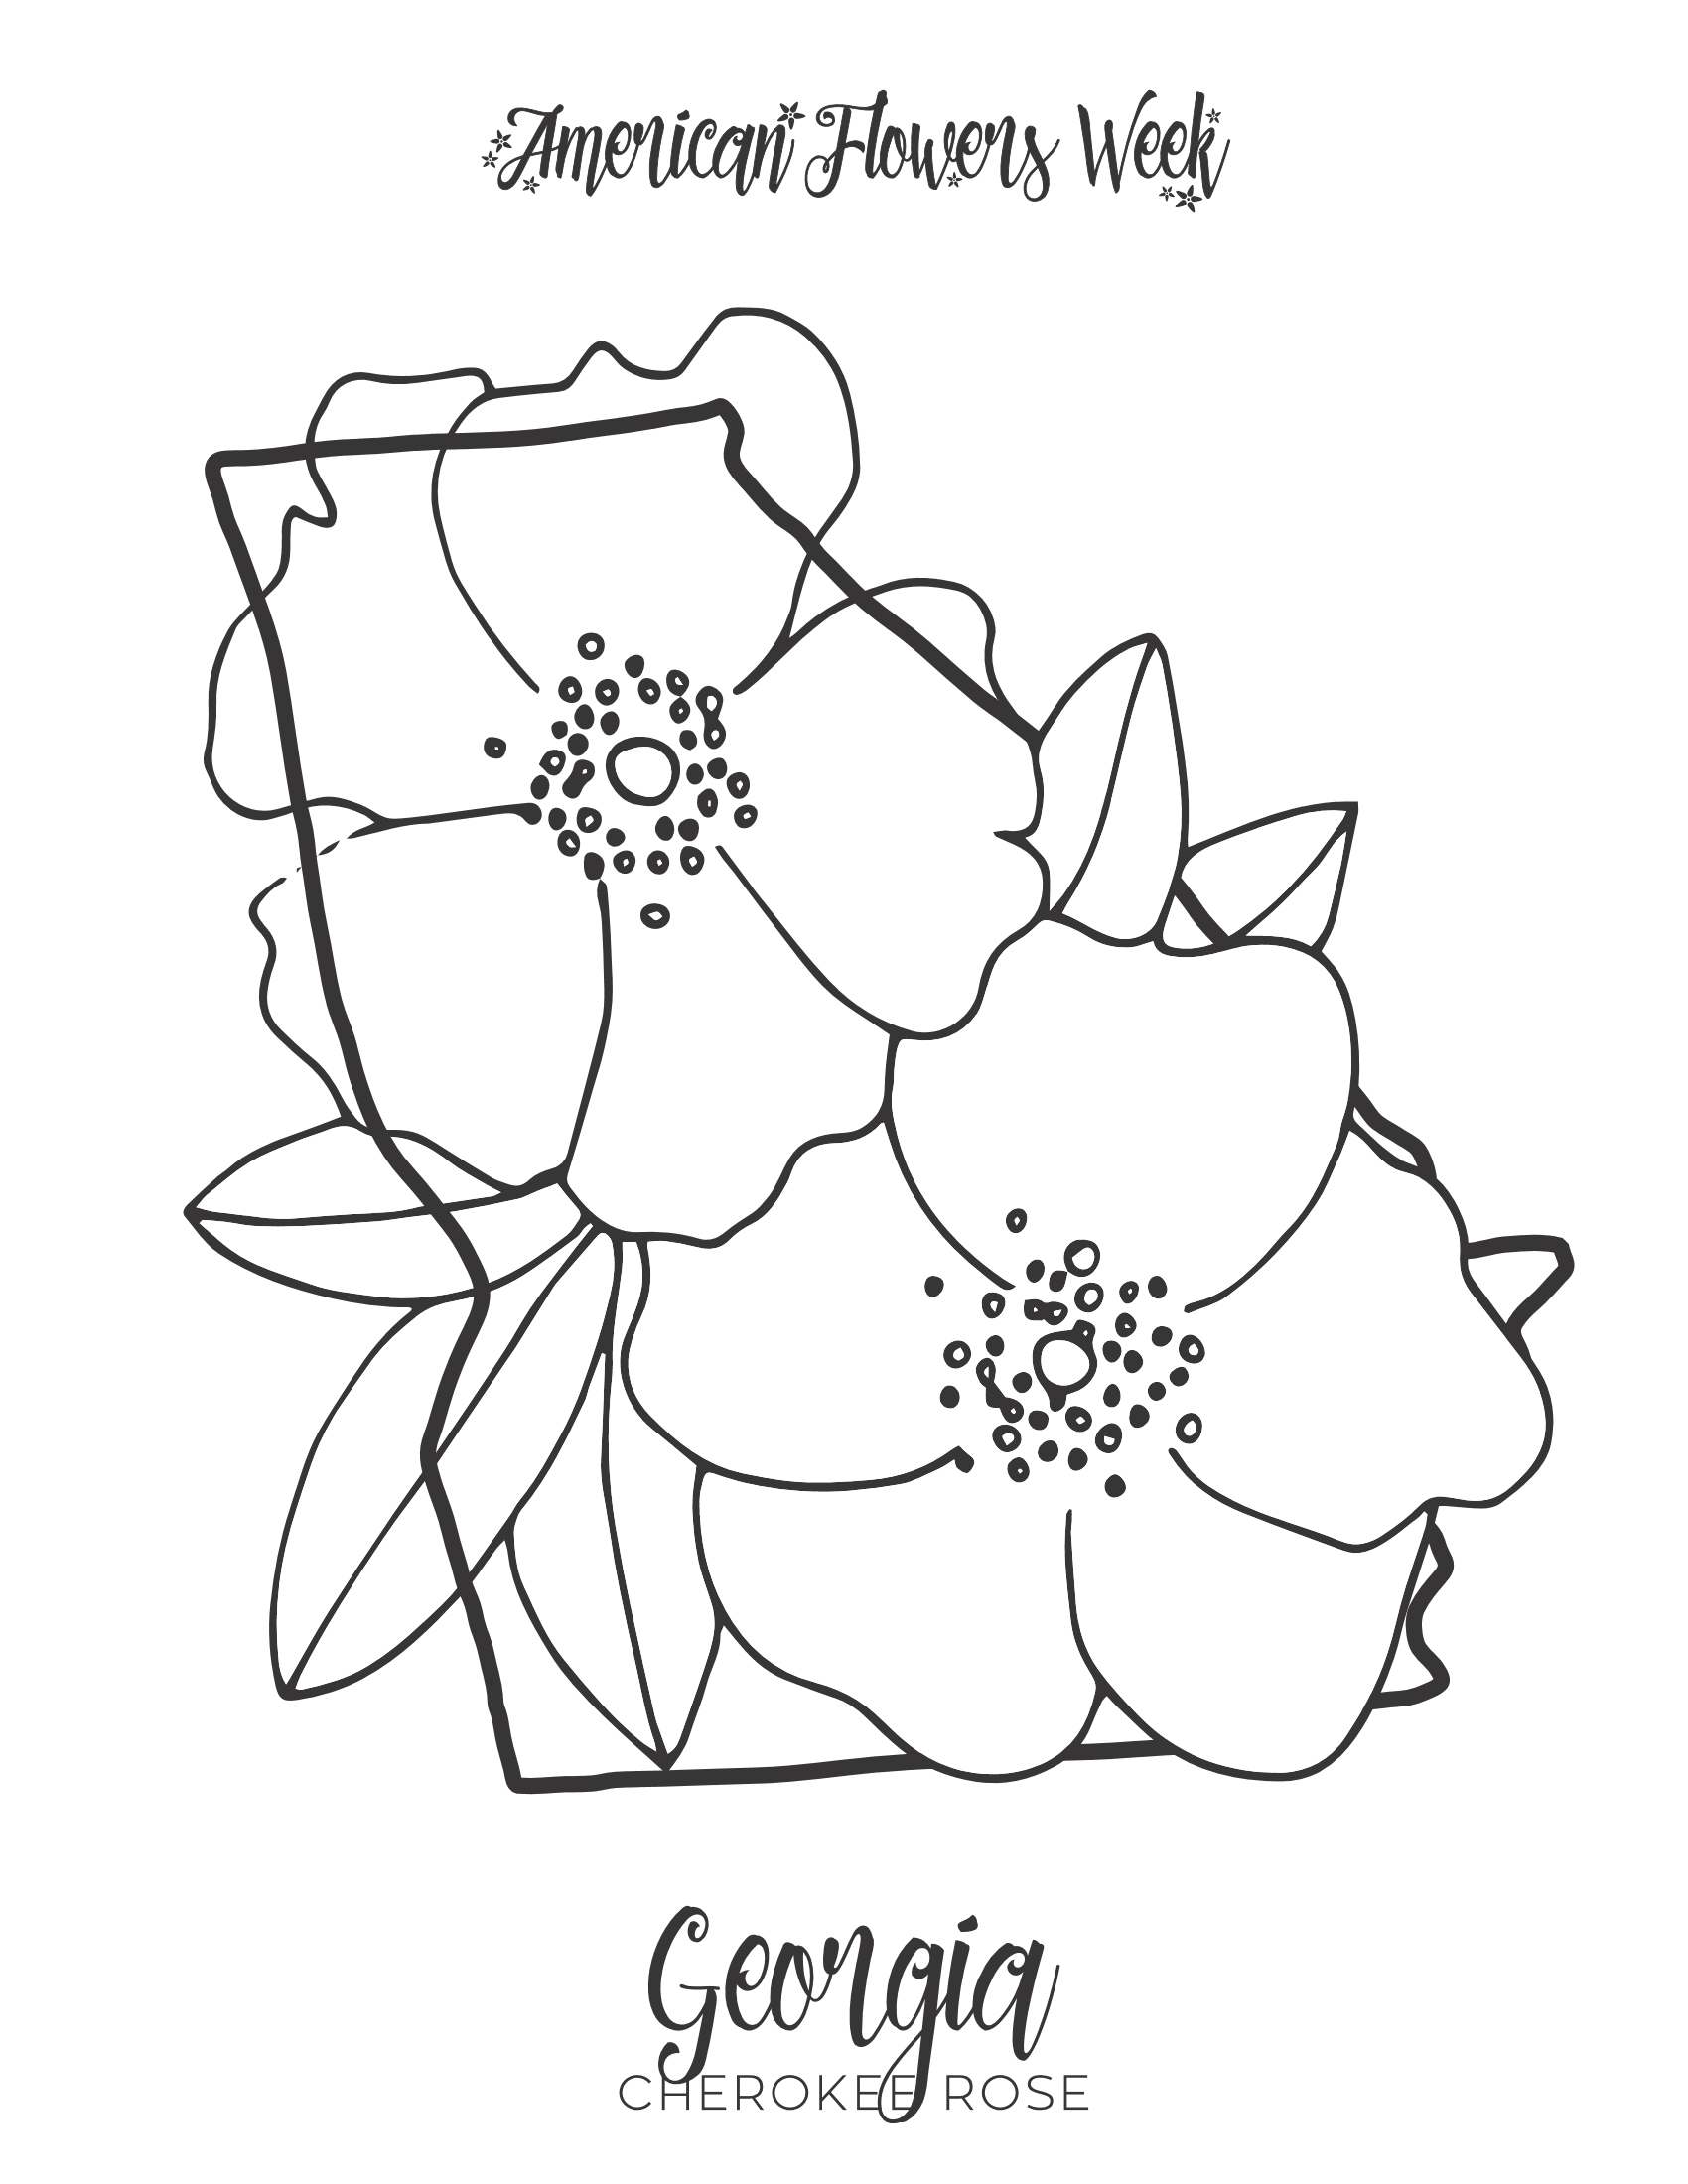 michigan state flower 50 state flowers coloring pages for kids michigan state flower 1 1